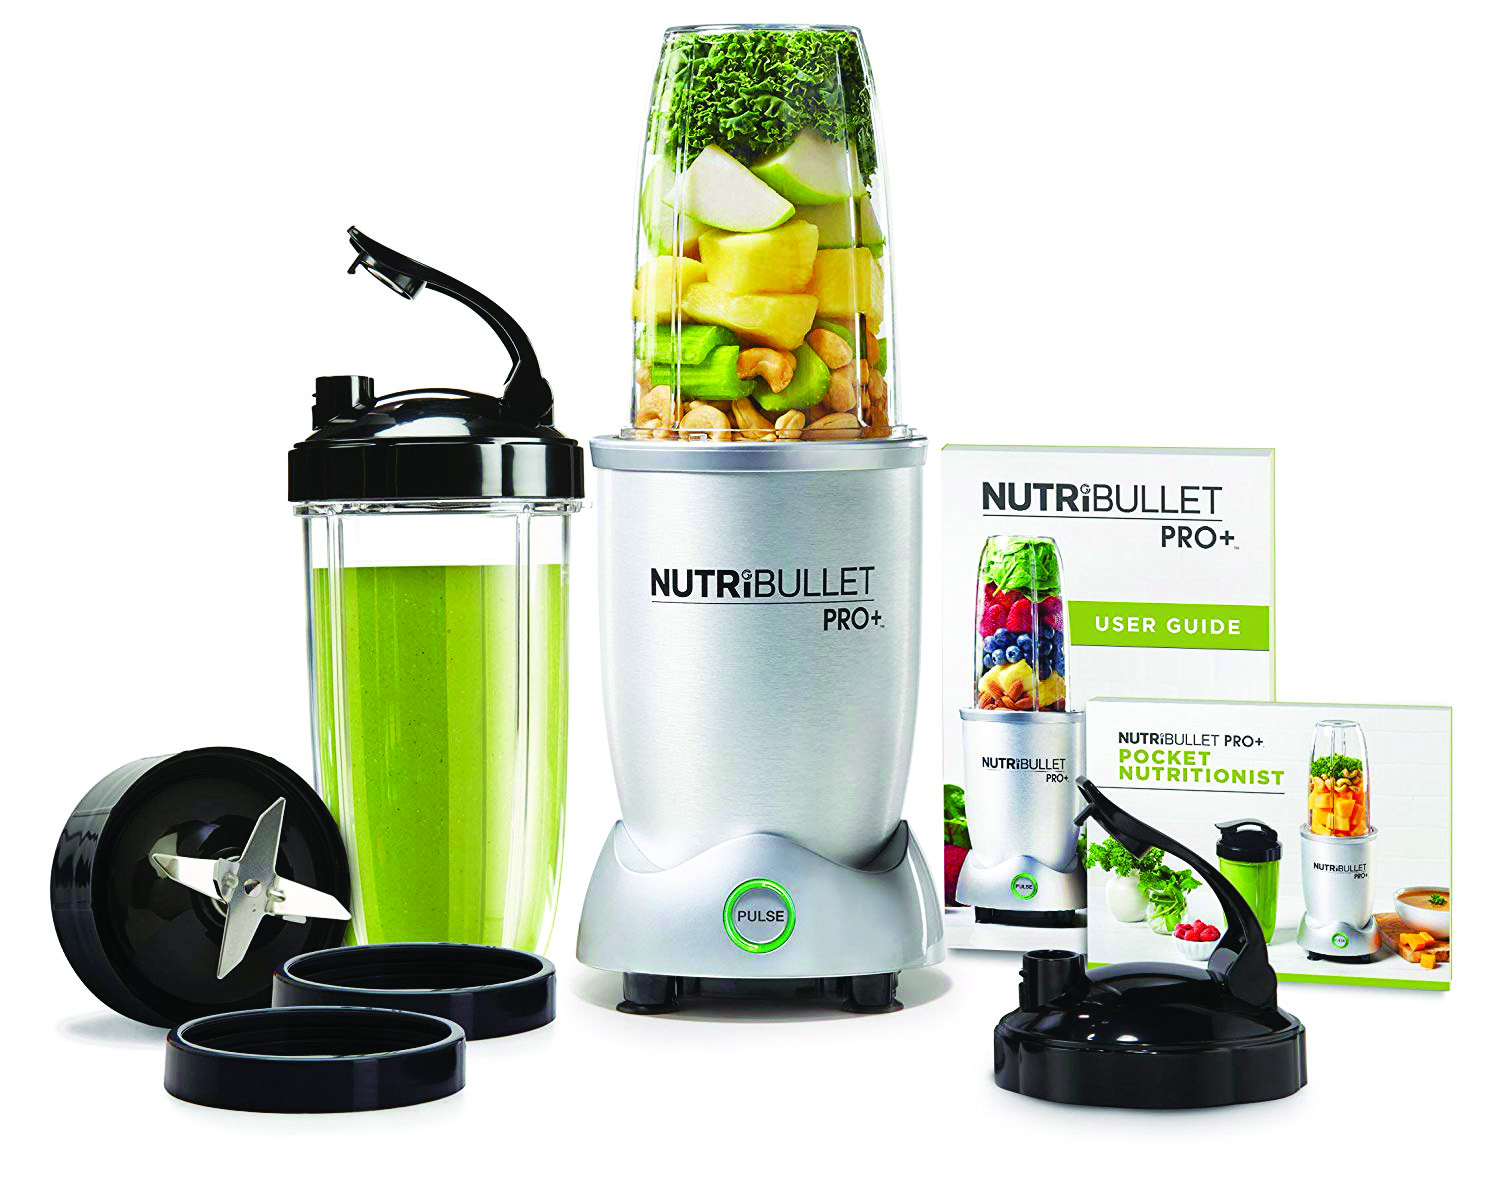 Nutribullet Pro Blender - This is the upgraded version of the NutriBullet blender and it's 50% more powerful than the original. The NutriBullet Pro extracts all the nutrients from raw fruits, vegetables, nuts and seeds, pulverizing them into a smooth, healthy drink. This series comes with all the accessories you need for goodness on-the-go, so you can use the travel cups, storage cups and flip-top lids which screw directly onto the container used for blending.Unlike traditional juicers, the Nutribullet Pro lets you get the most out of your fruits and veg by shredding through tough stems or skins and busting open any nuts or seeds. It's easy to use and comes with a great recipe book so you can blend smoothies, shakes, and juices for specific wellness or flavor. https://amzn.to/32o5oSX